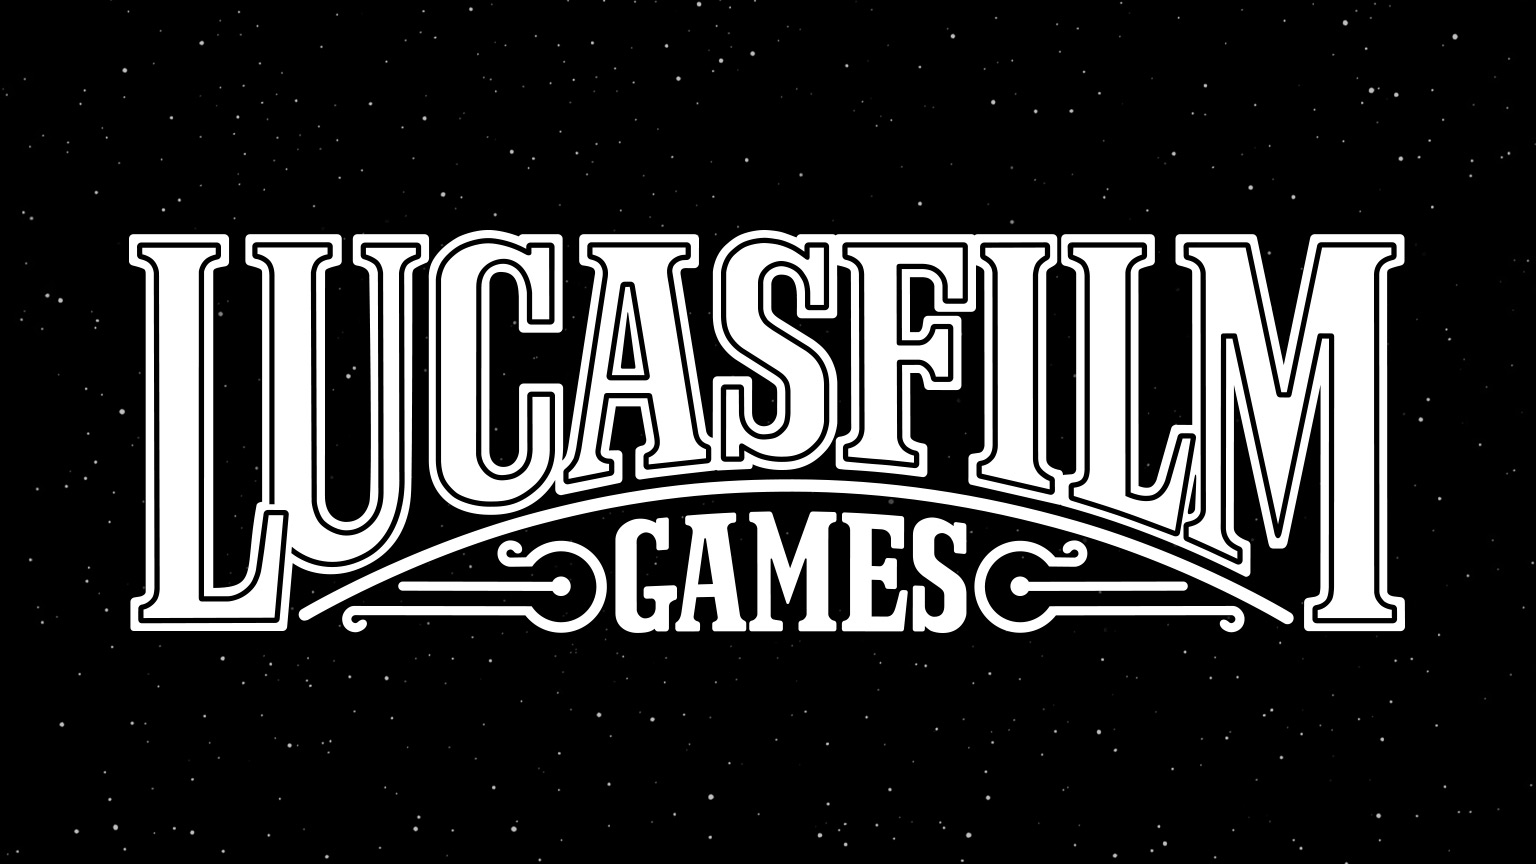 Lucasfilm Games Rebrand Revealed as the Future of Star Wars Gaming